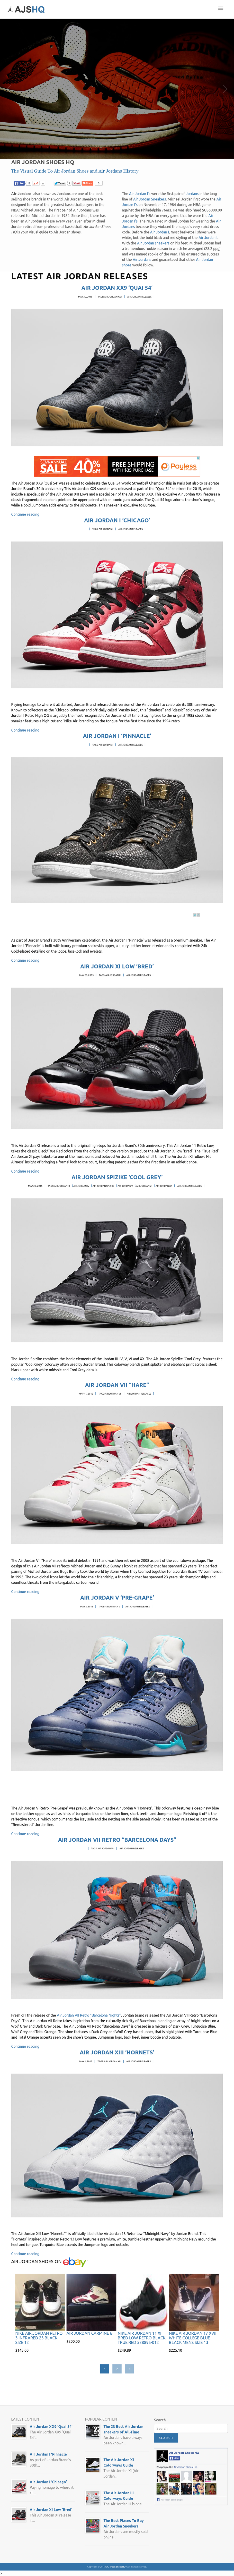 Air Jordan Shoes Hq Competitors Revenue And Employees Owler